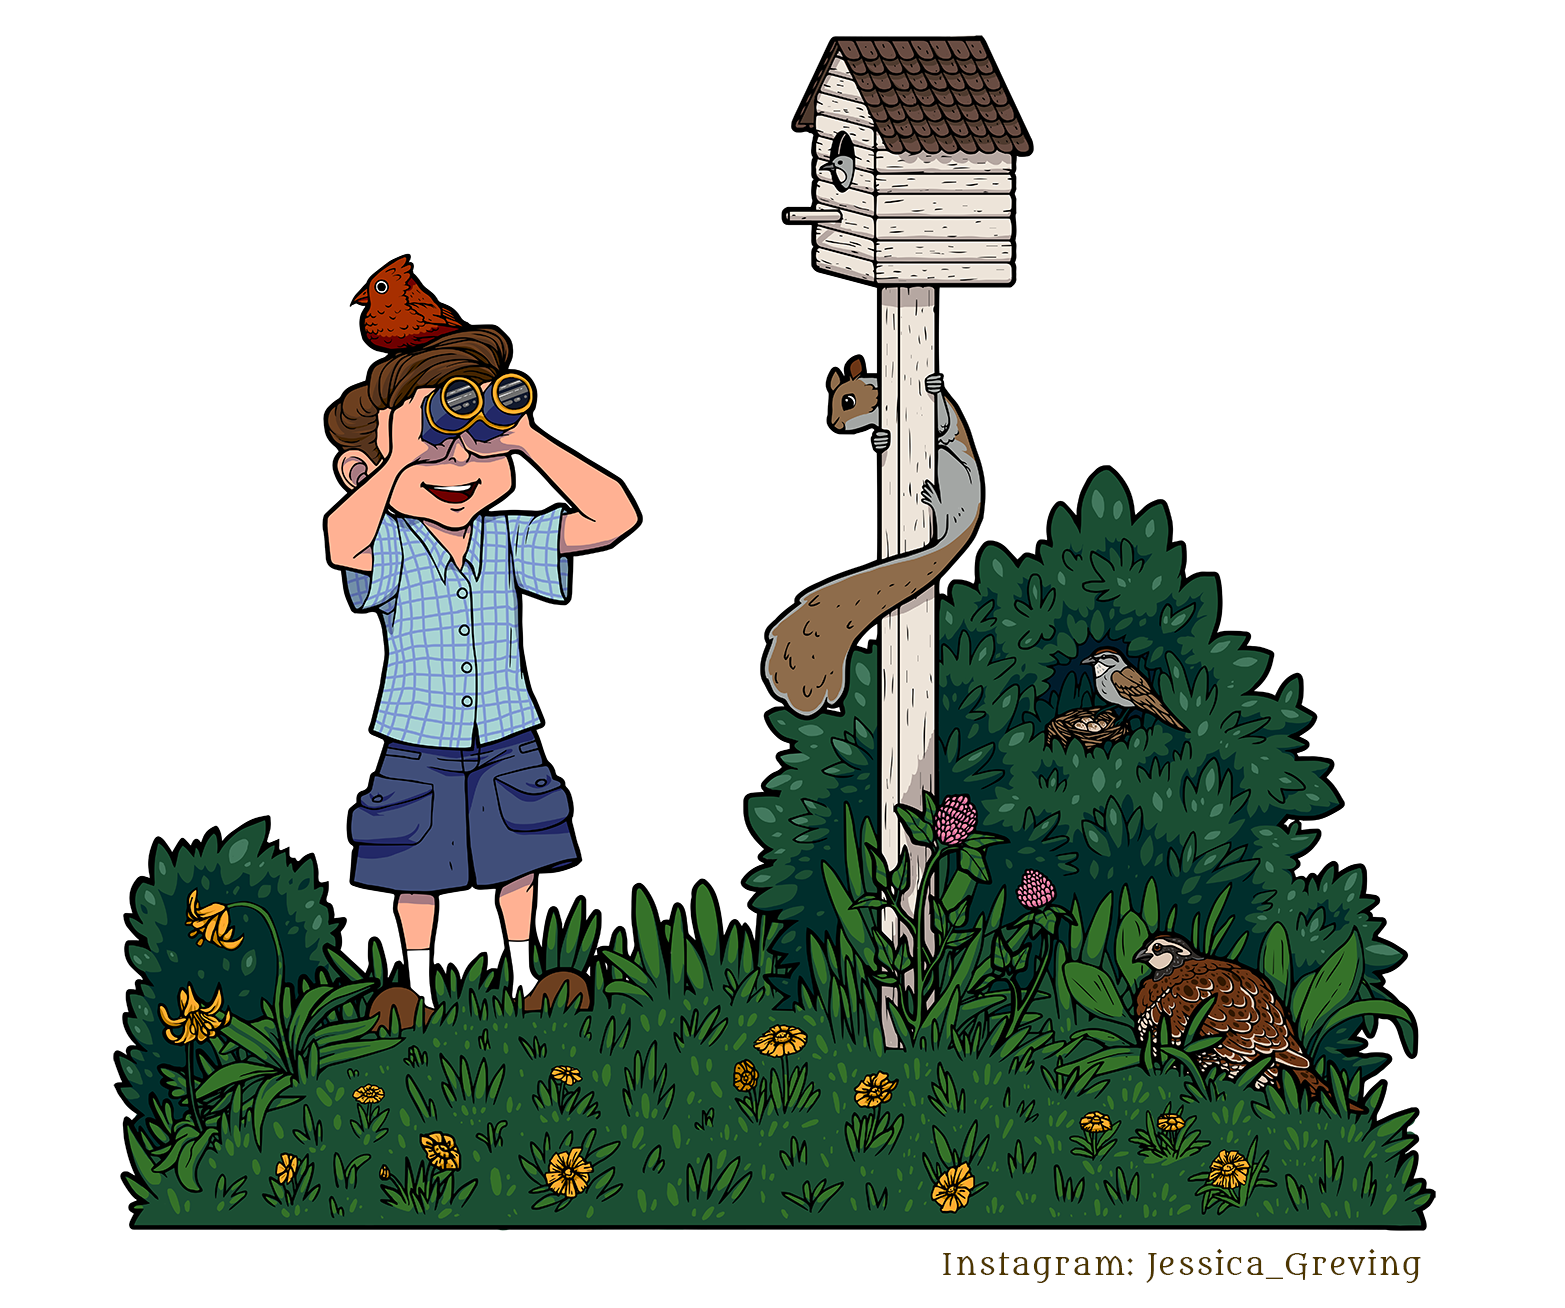 Final_Vector_BirdHouse-Vignette_JessicaGreving-small-for-web.png